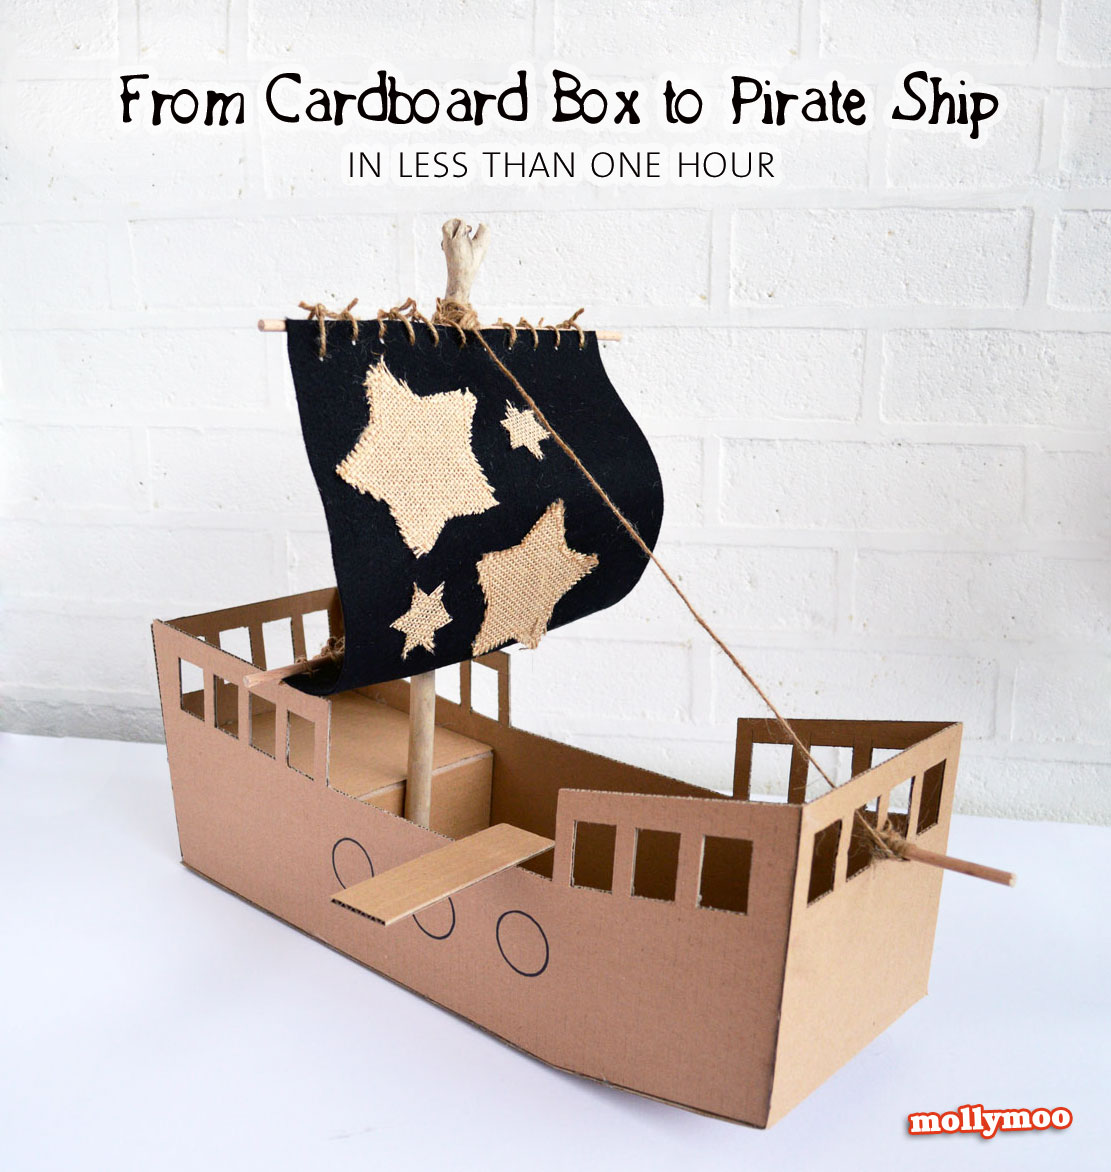 MollyMooCrafts DIY Cardboard Pirate Ship - craft tutorial